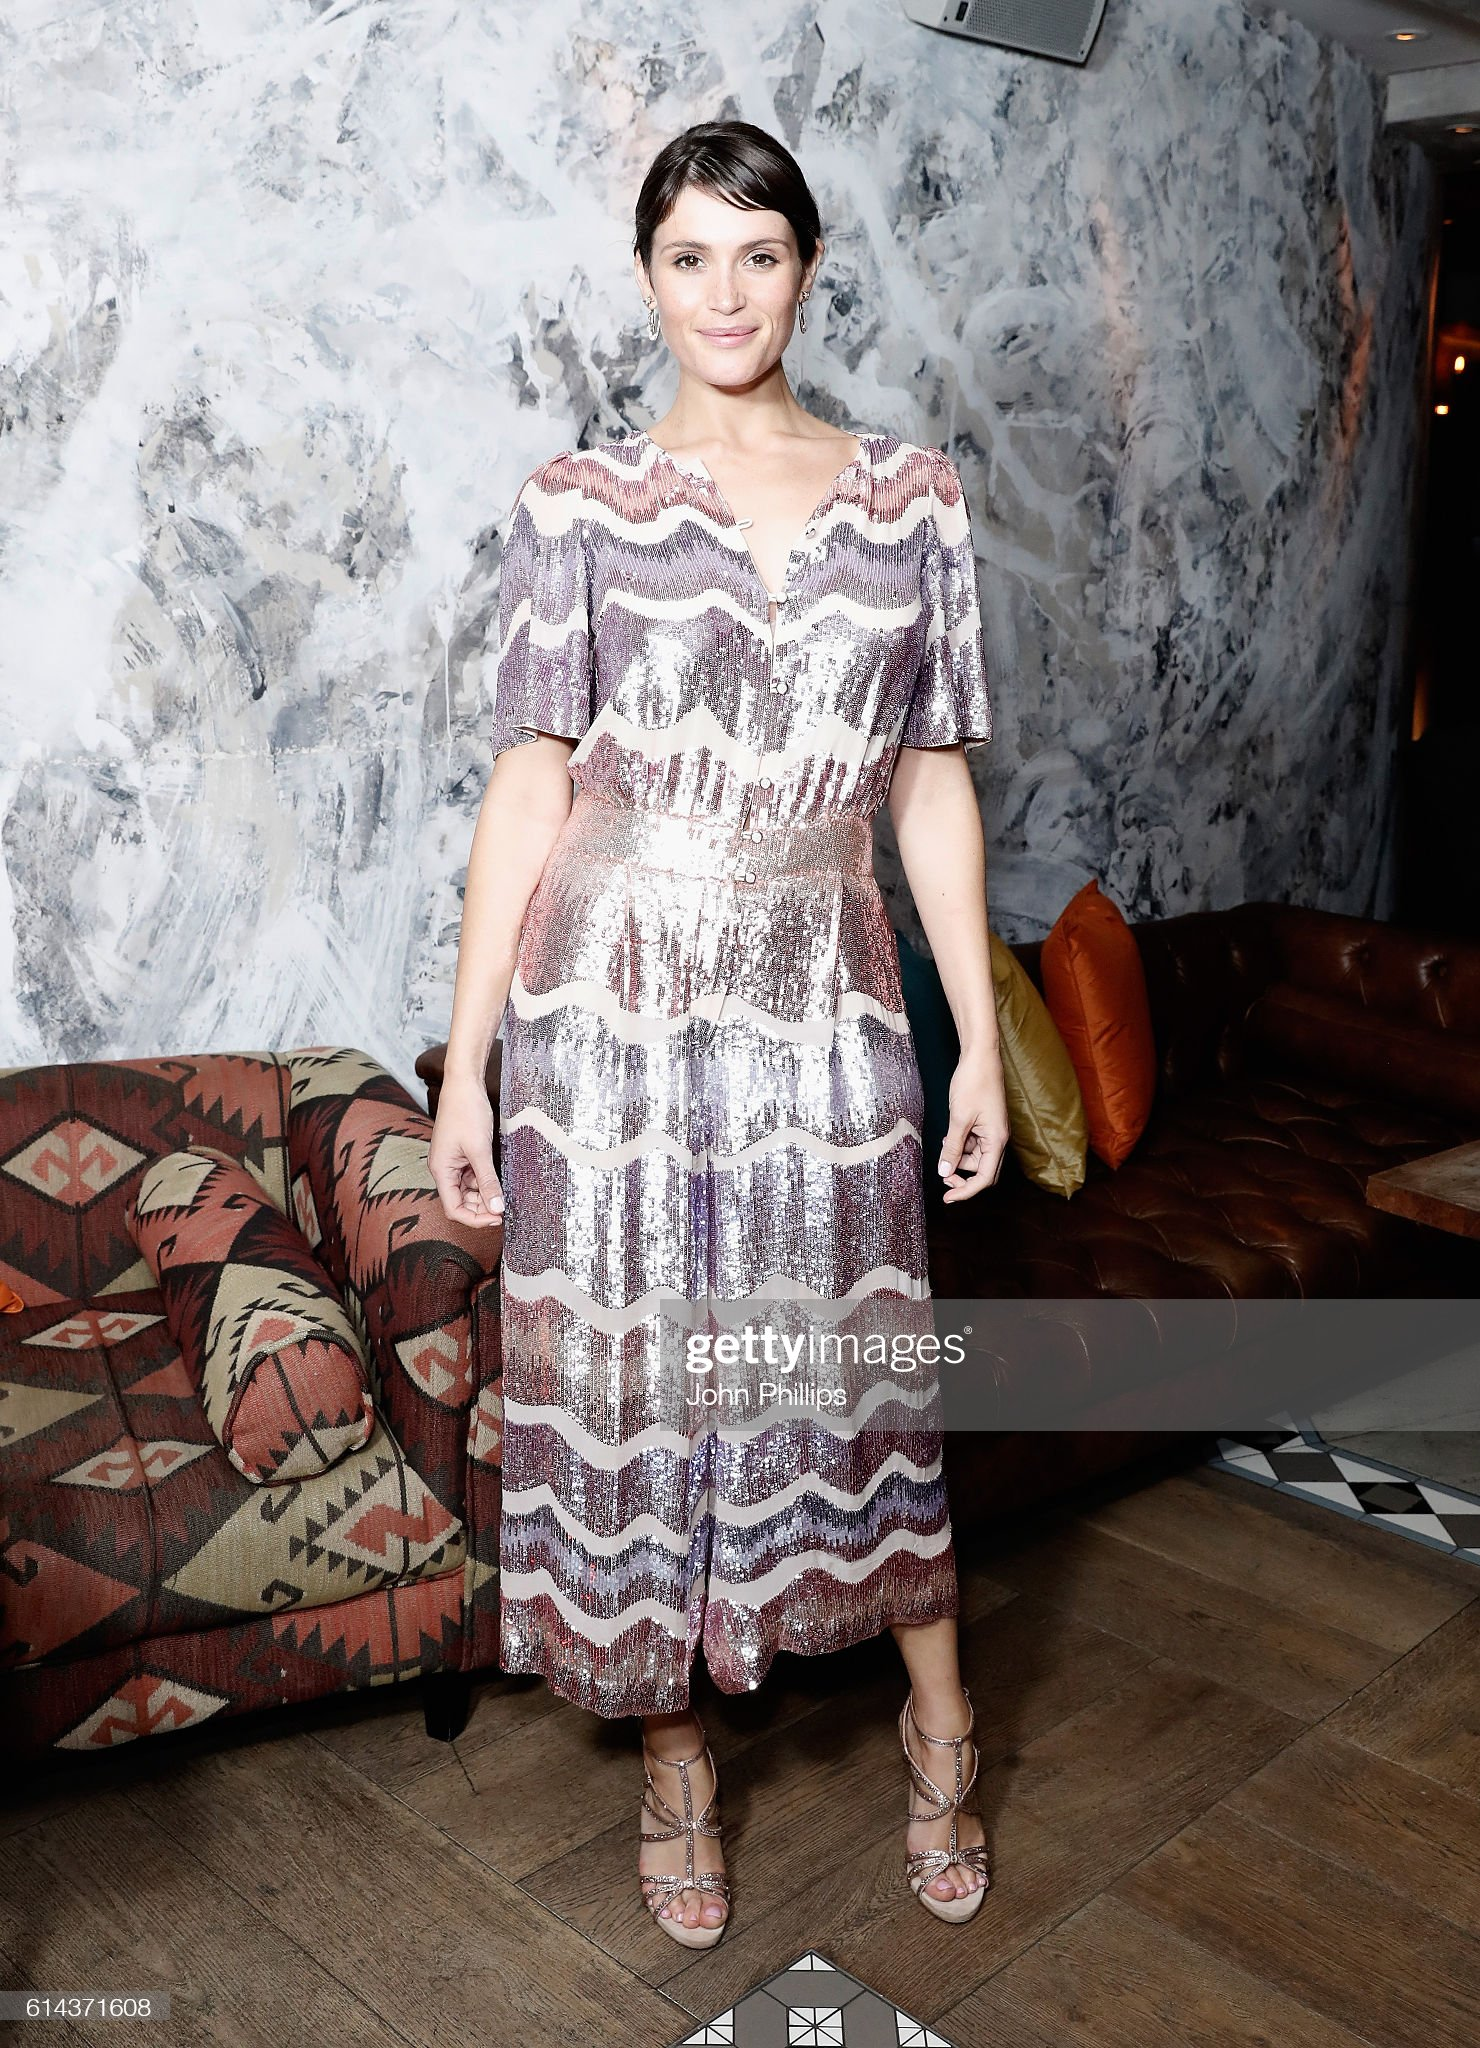 actress-gemma-arterton-attends-their-finest-after-party-during-the-picture-id614371608